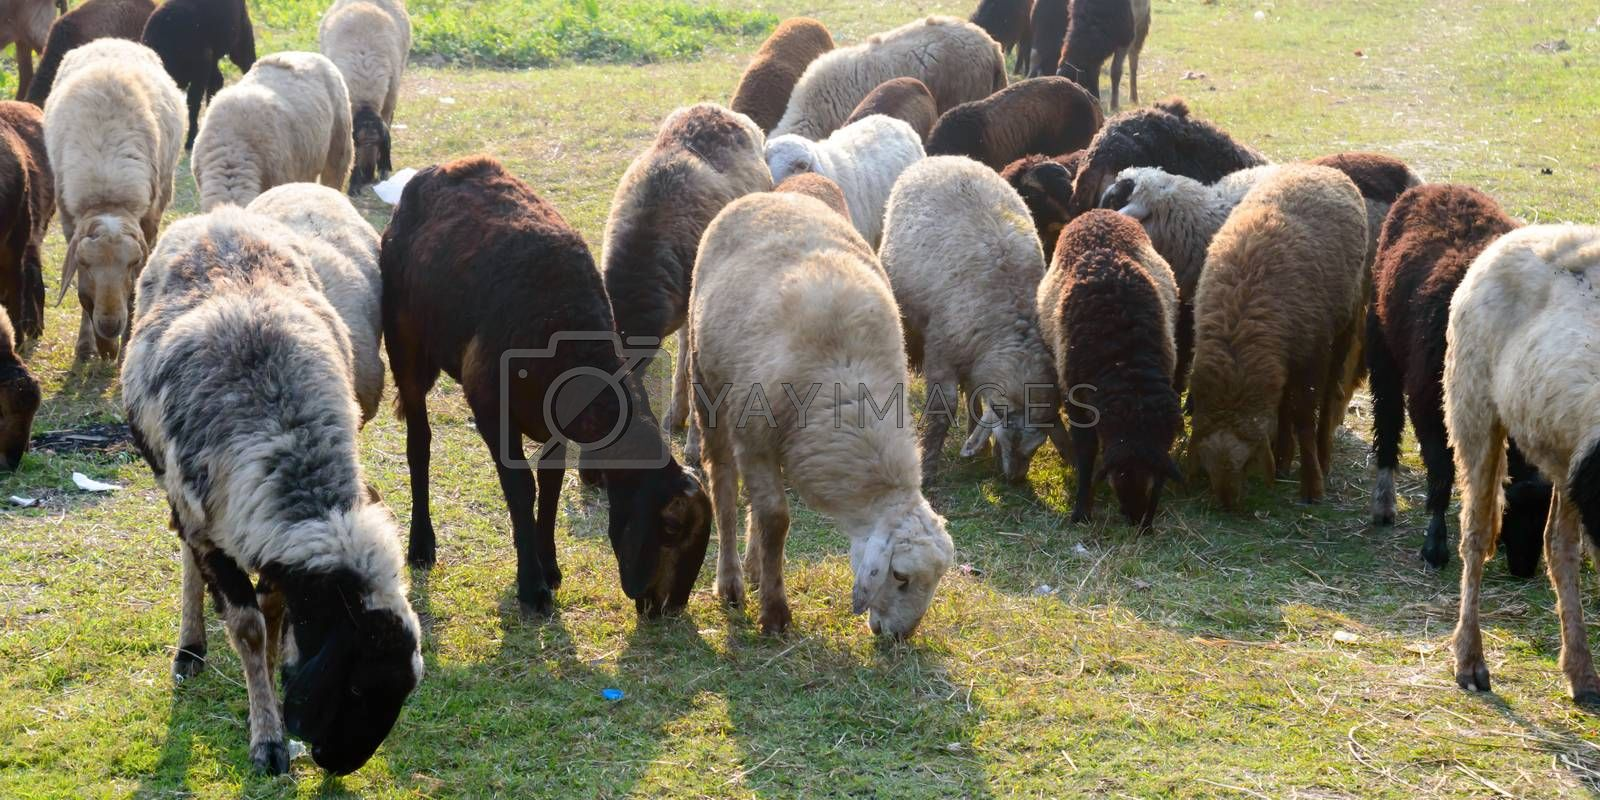 Flock of Domestic Sheep, Ewe, Lamb, Ram (Ovis aries species genus) grazing in a sheep farm in Summer Sunset. Typically livestock ruminant mammals. Artiodactyla family. Dairy cattle Background theme.